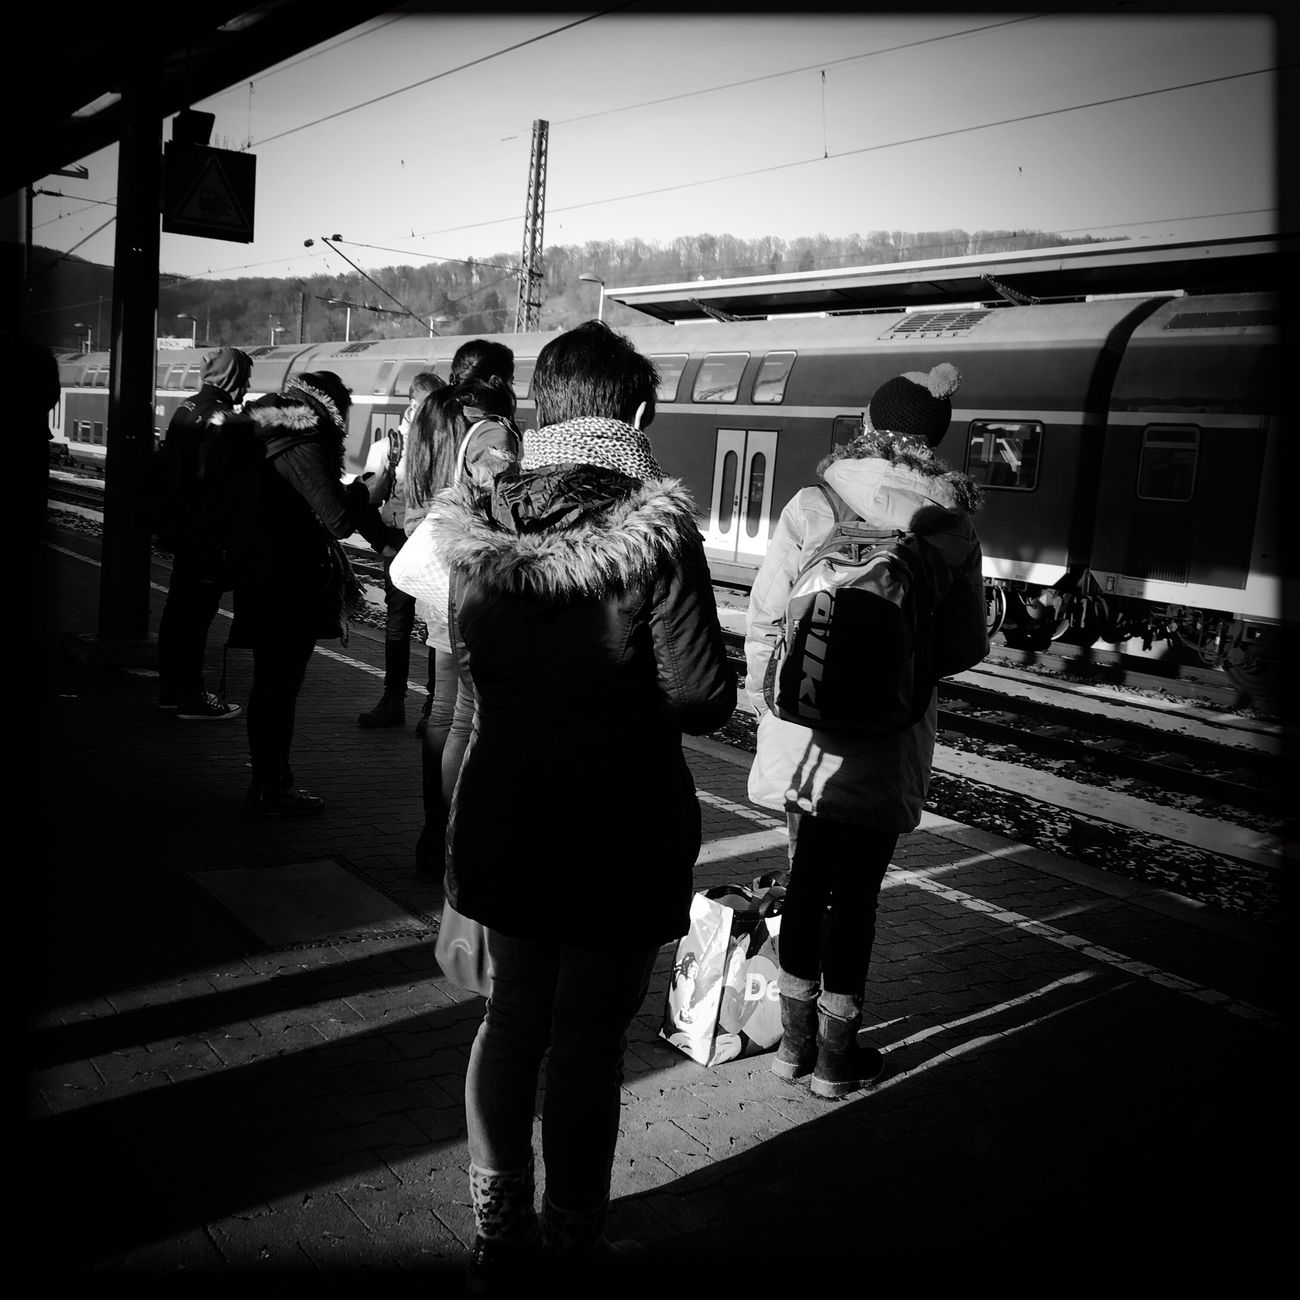 Transportation Public Transportation Railroad Station Platform Women Greyscale Streetphotography Blackandwhite Urbanclothes Urbanliving Documentary IPhoneography Mobilephotography Contrast Urban Daylight High Angle View People Sunlight Hardlight Lightandshadow